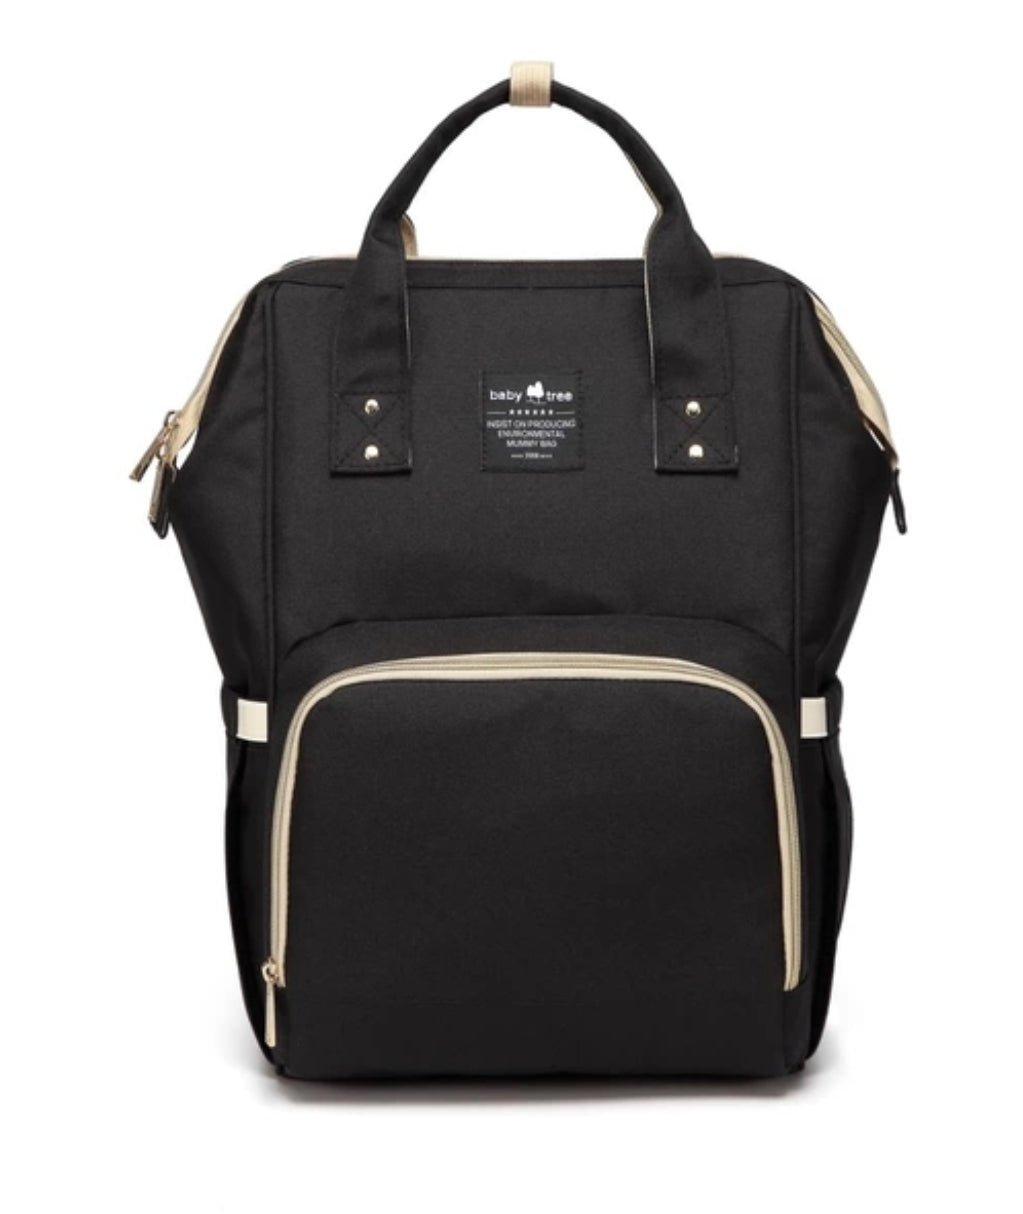 A Top Selling Nappy Backpack- Black